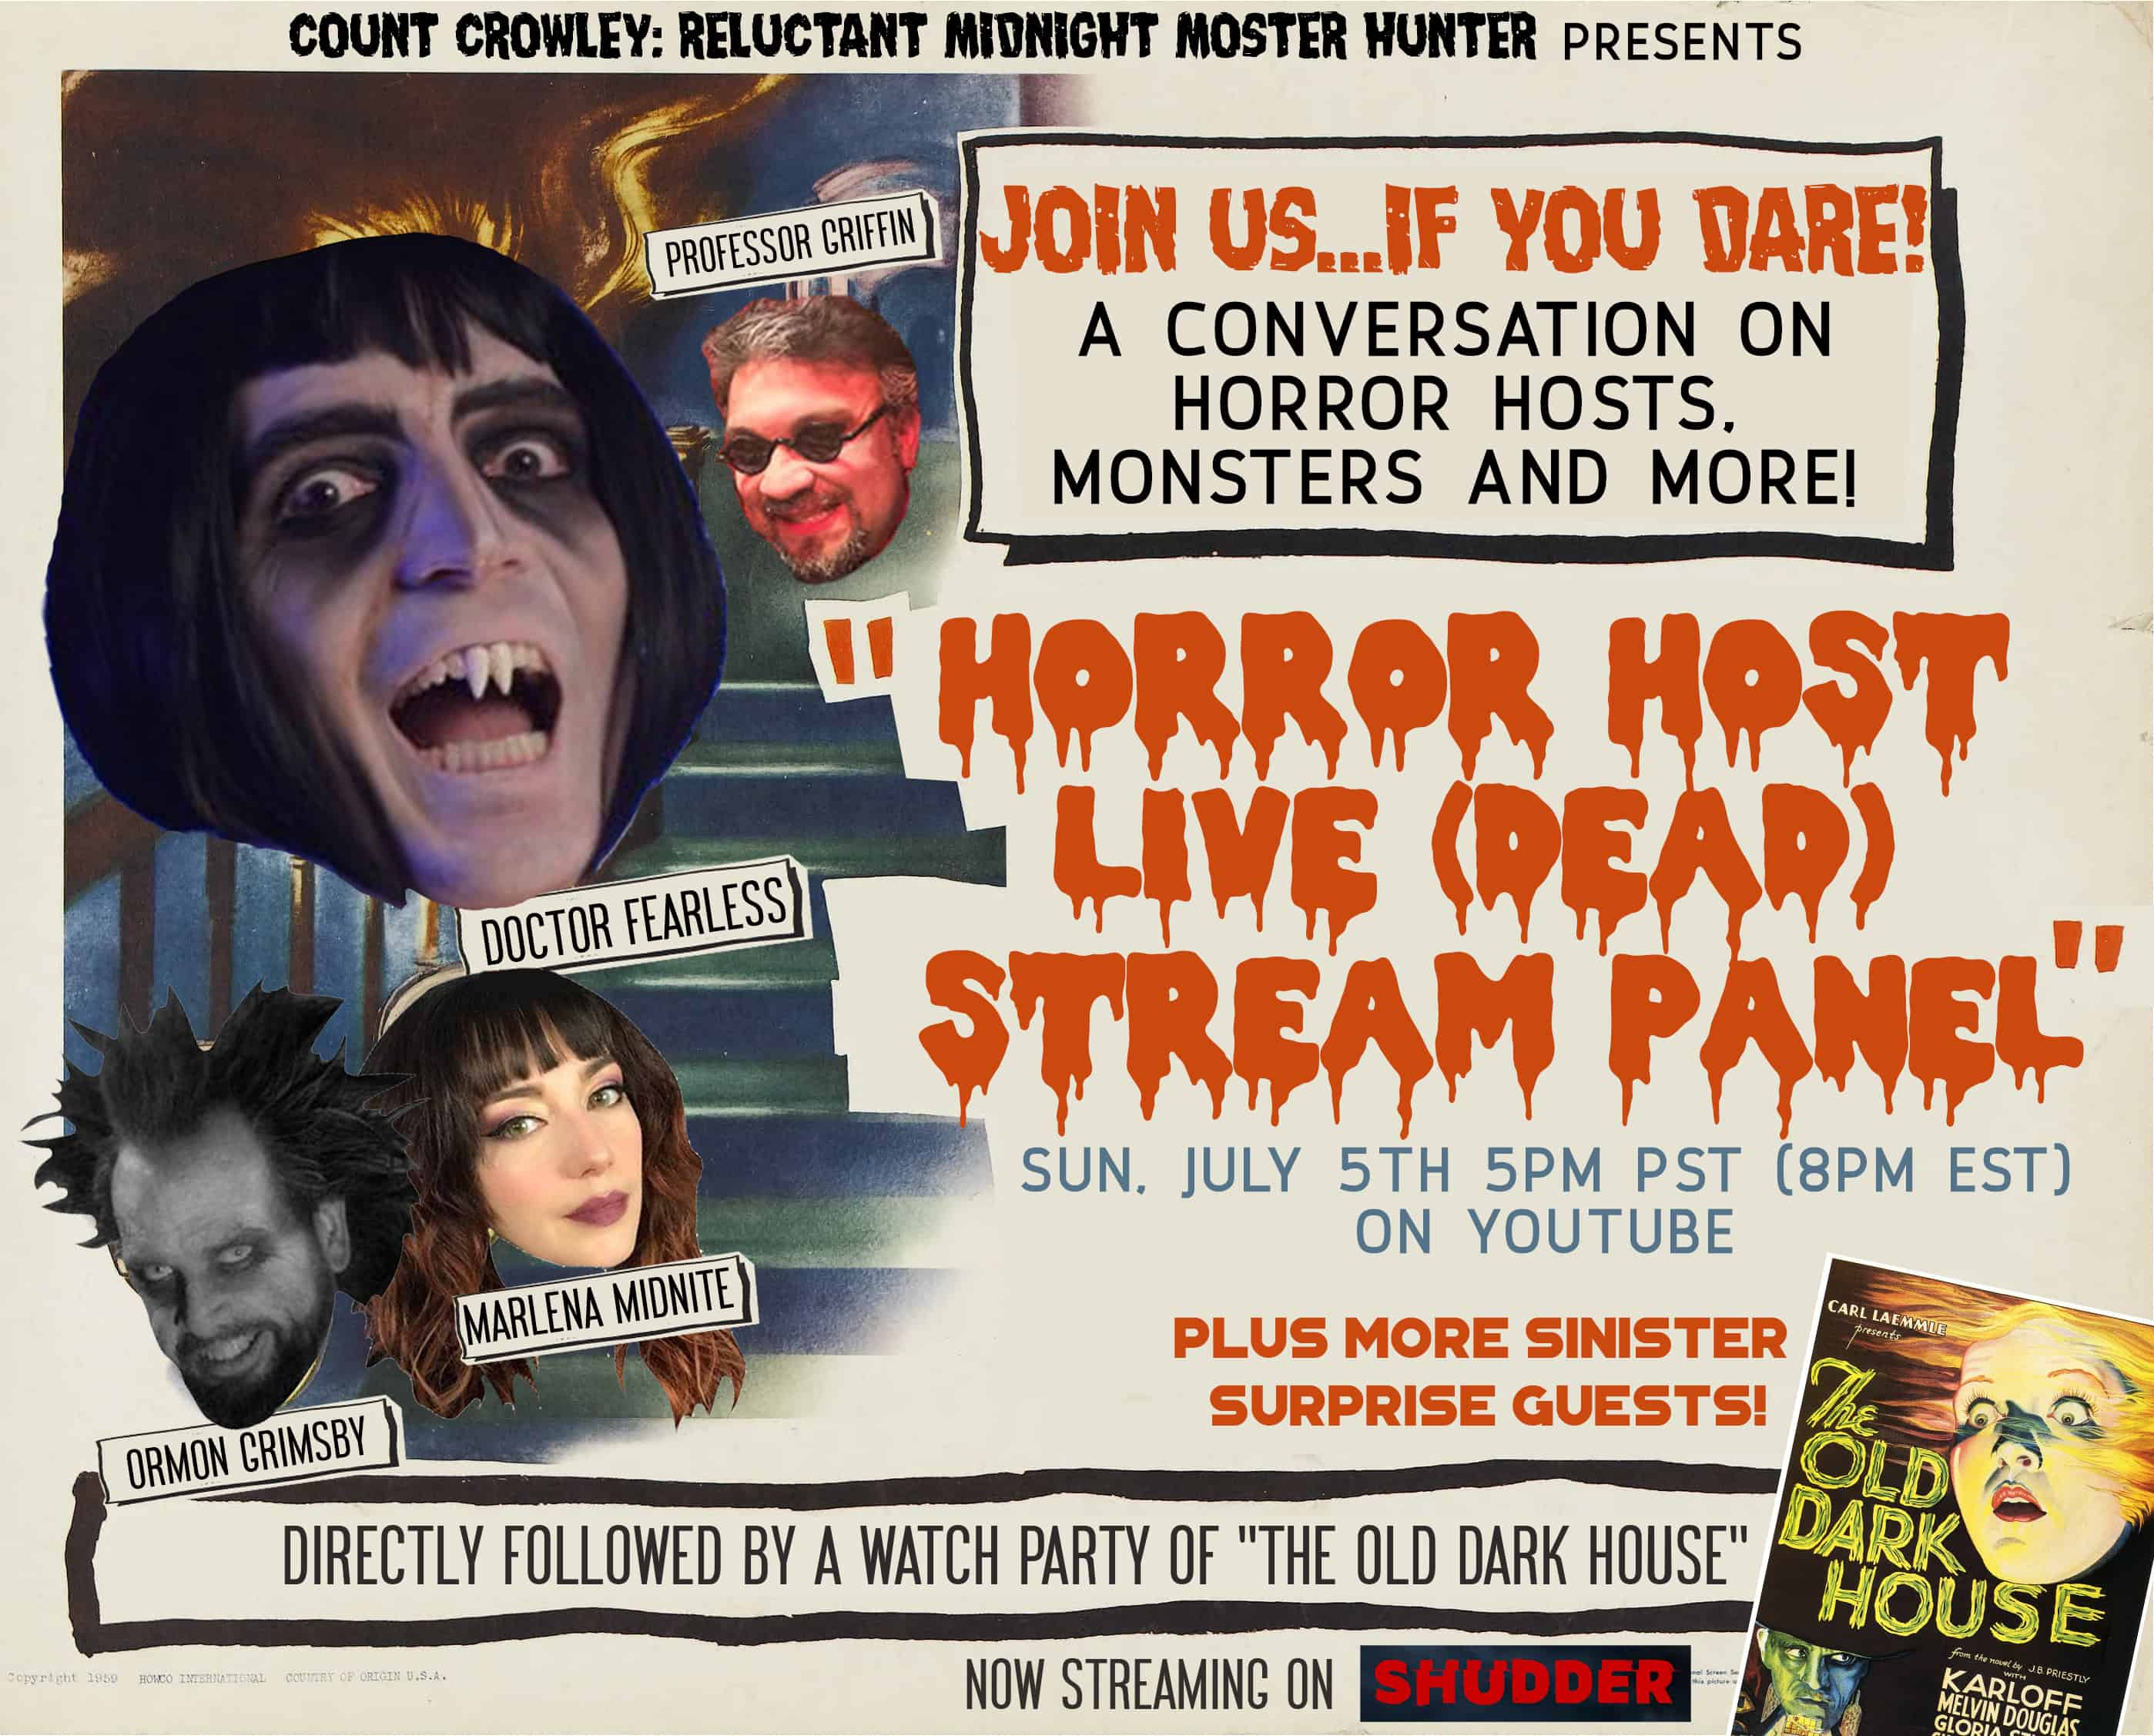 Horror News: Horror Host Live (Dead) Stream Panel!